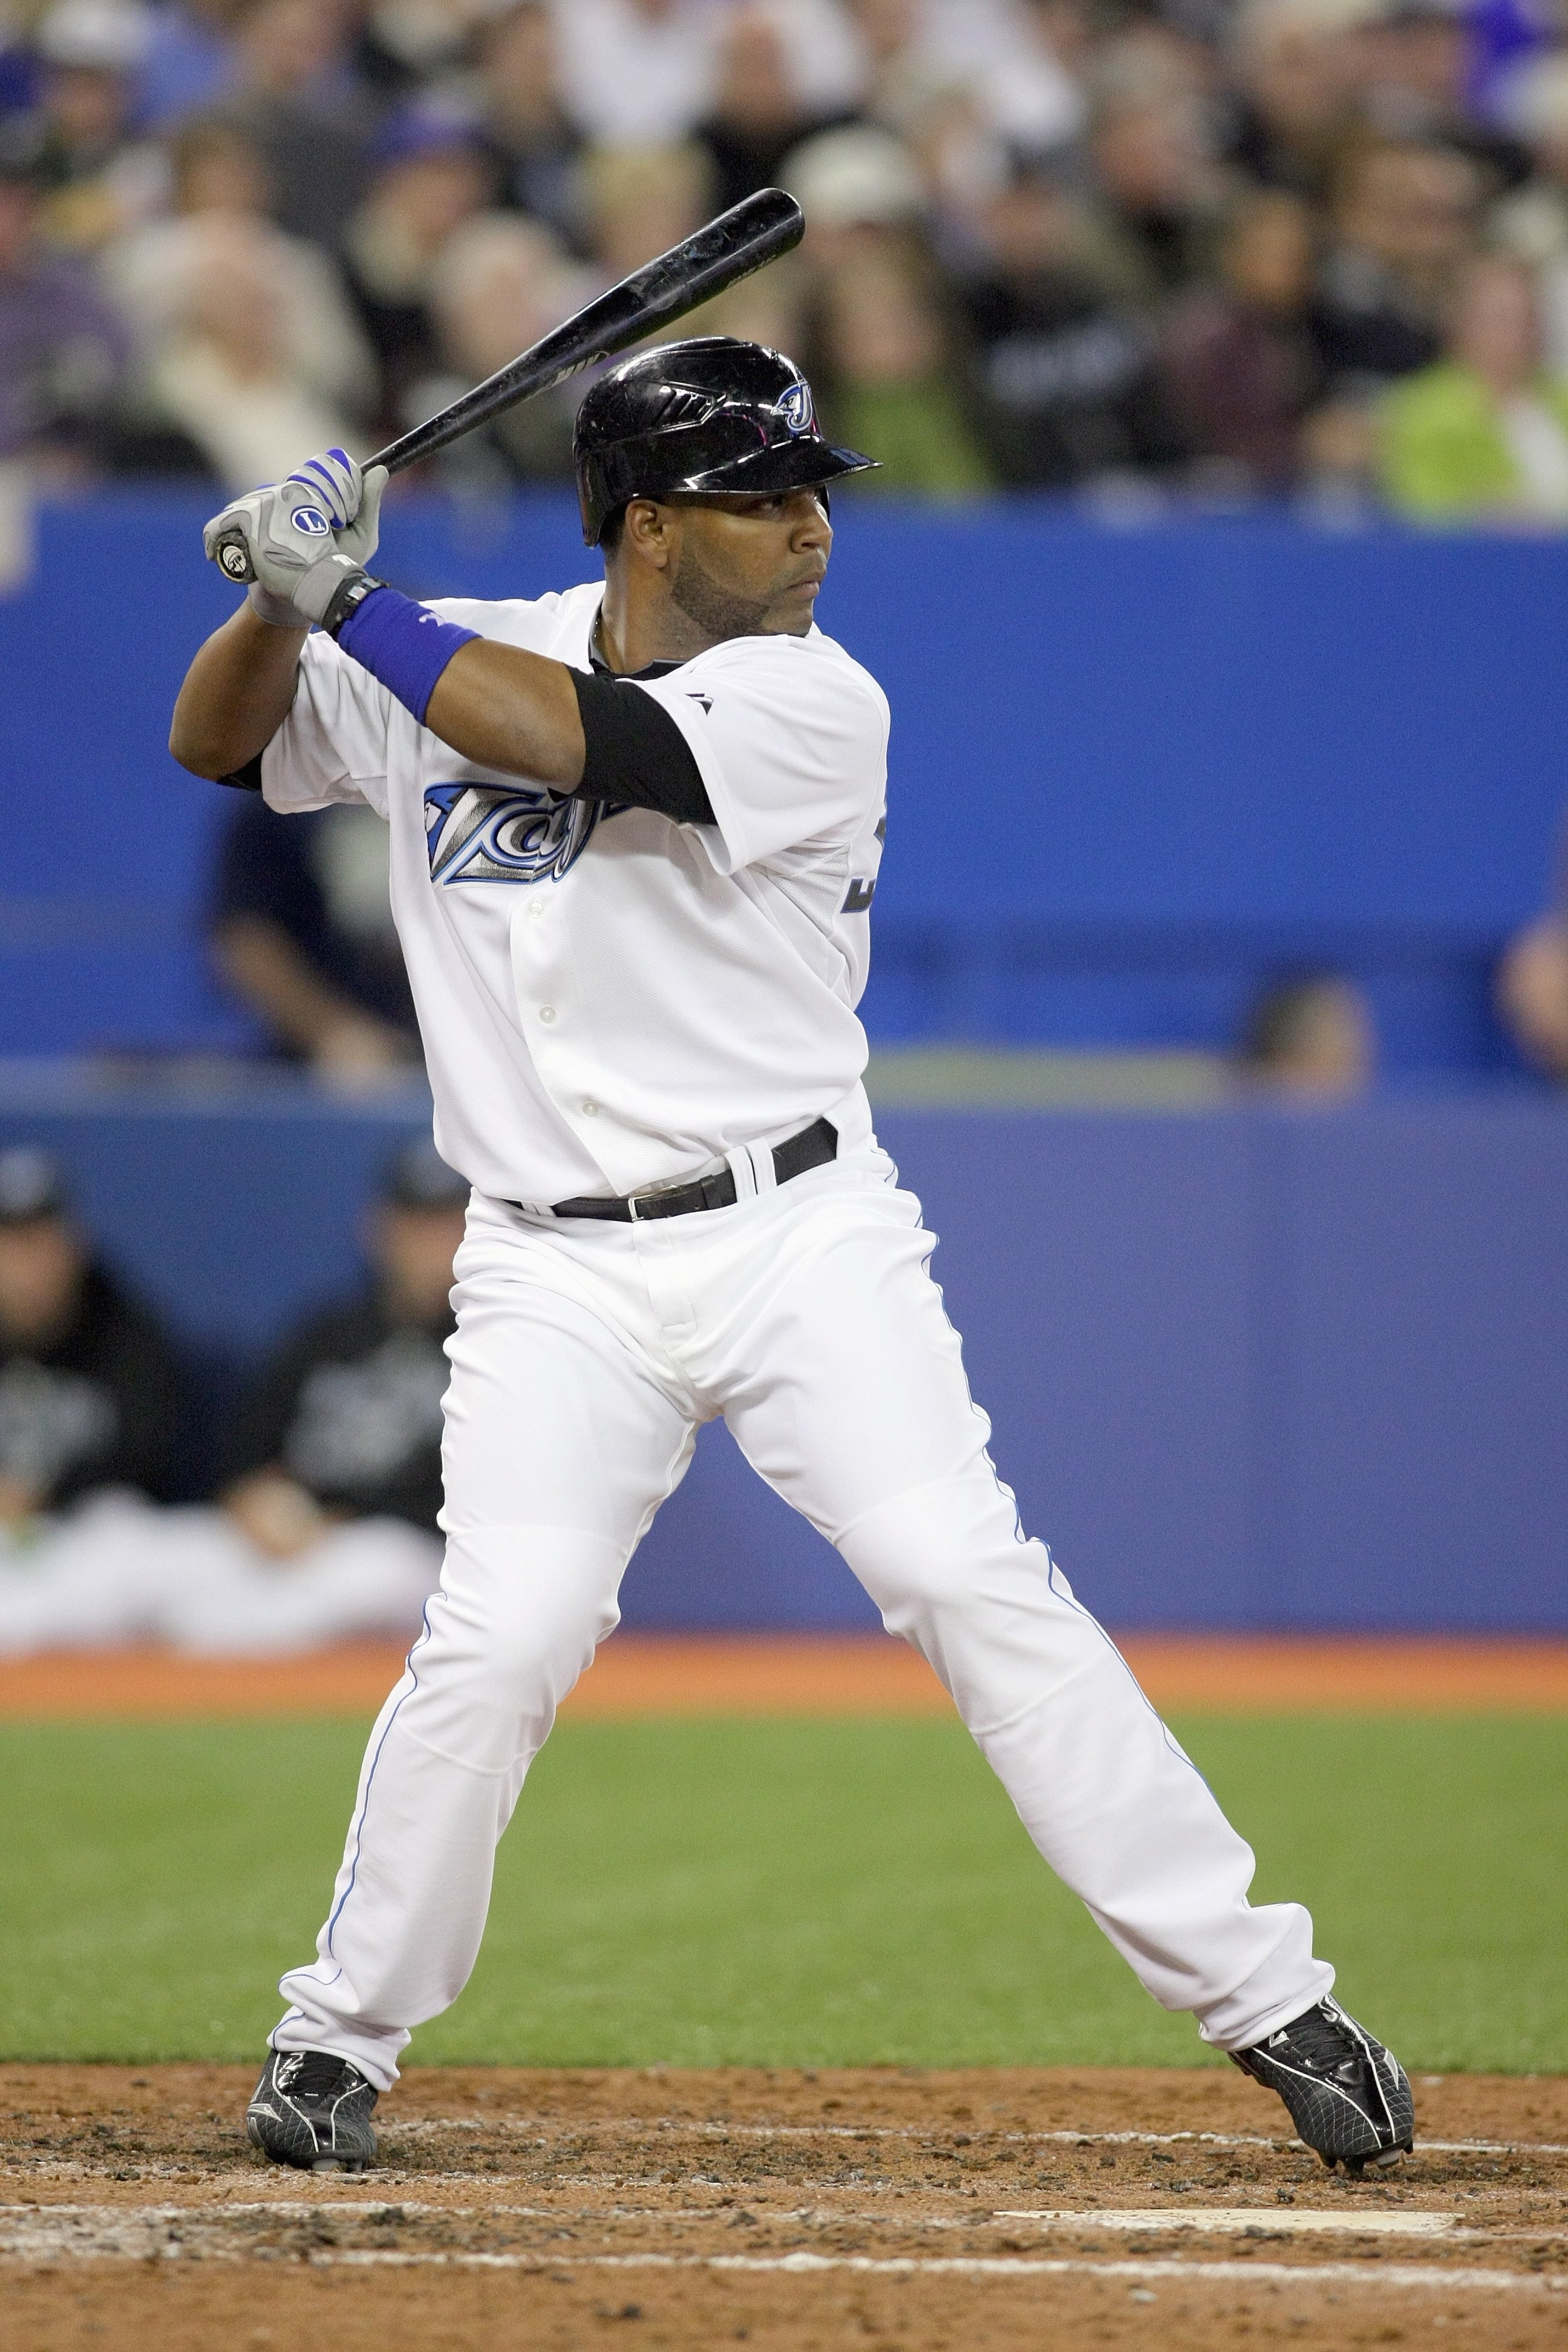 Replacing Edwin Encarnacion with Travis Hafner could give Toronto's offense an immediate boost.